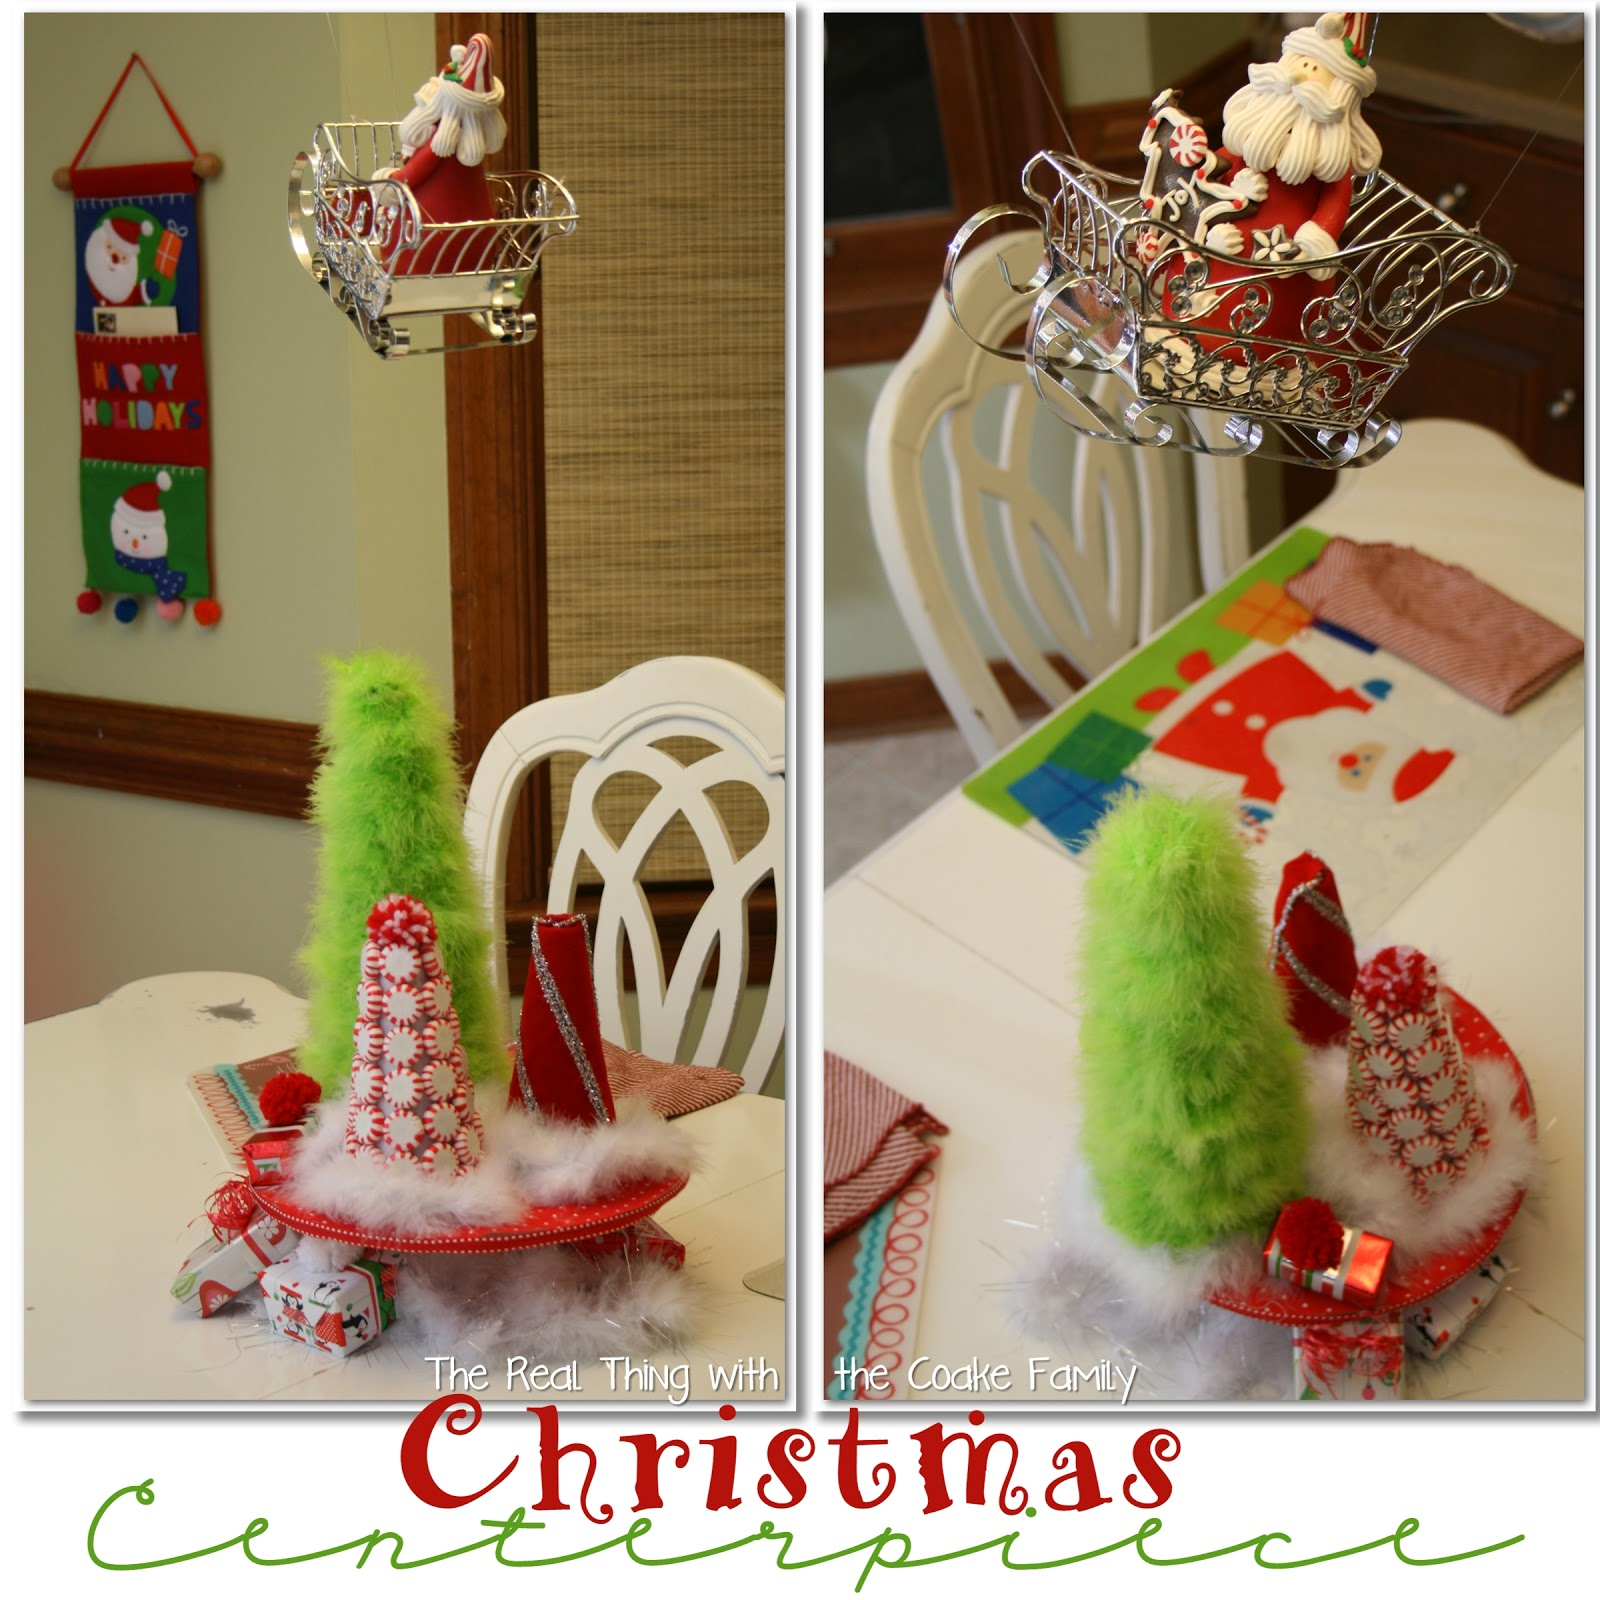 Table Decorating Ideas   Christmas Centerpiece   The Real Thing with     Table Decorating Ideas   Christmas Centerpiece